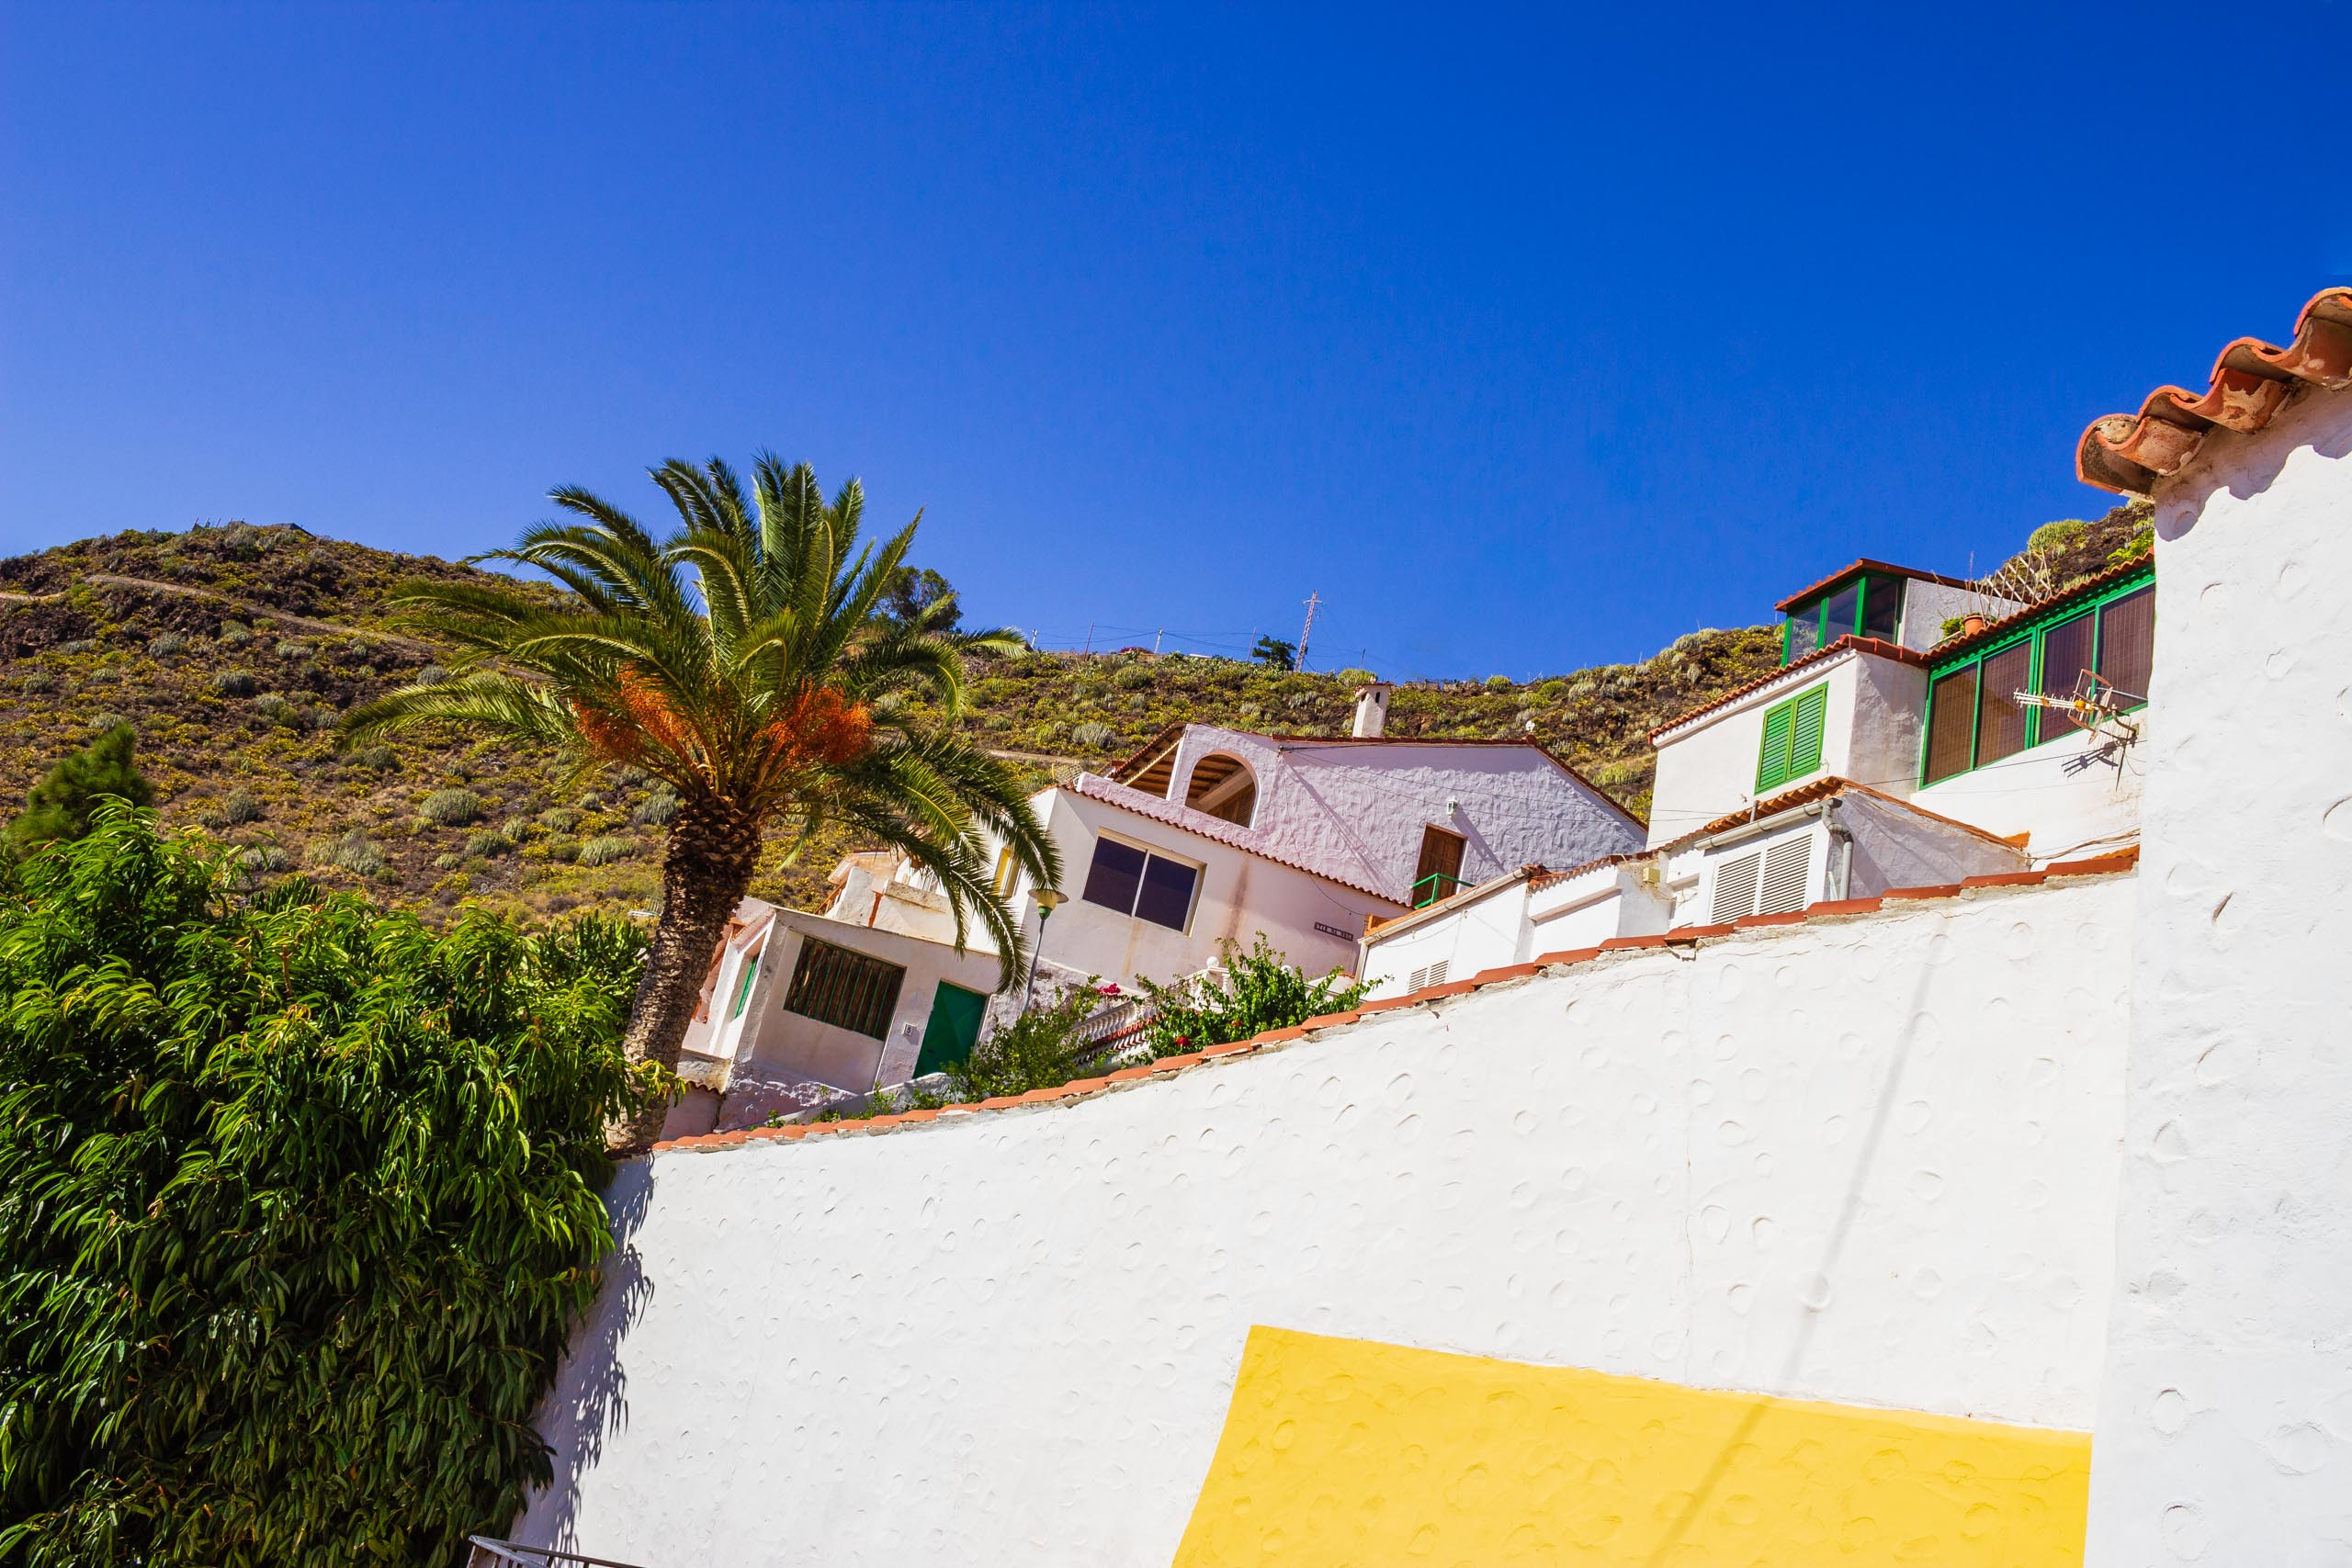 2017 09 GranCanaria Views from the house 1 001